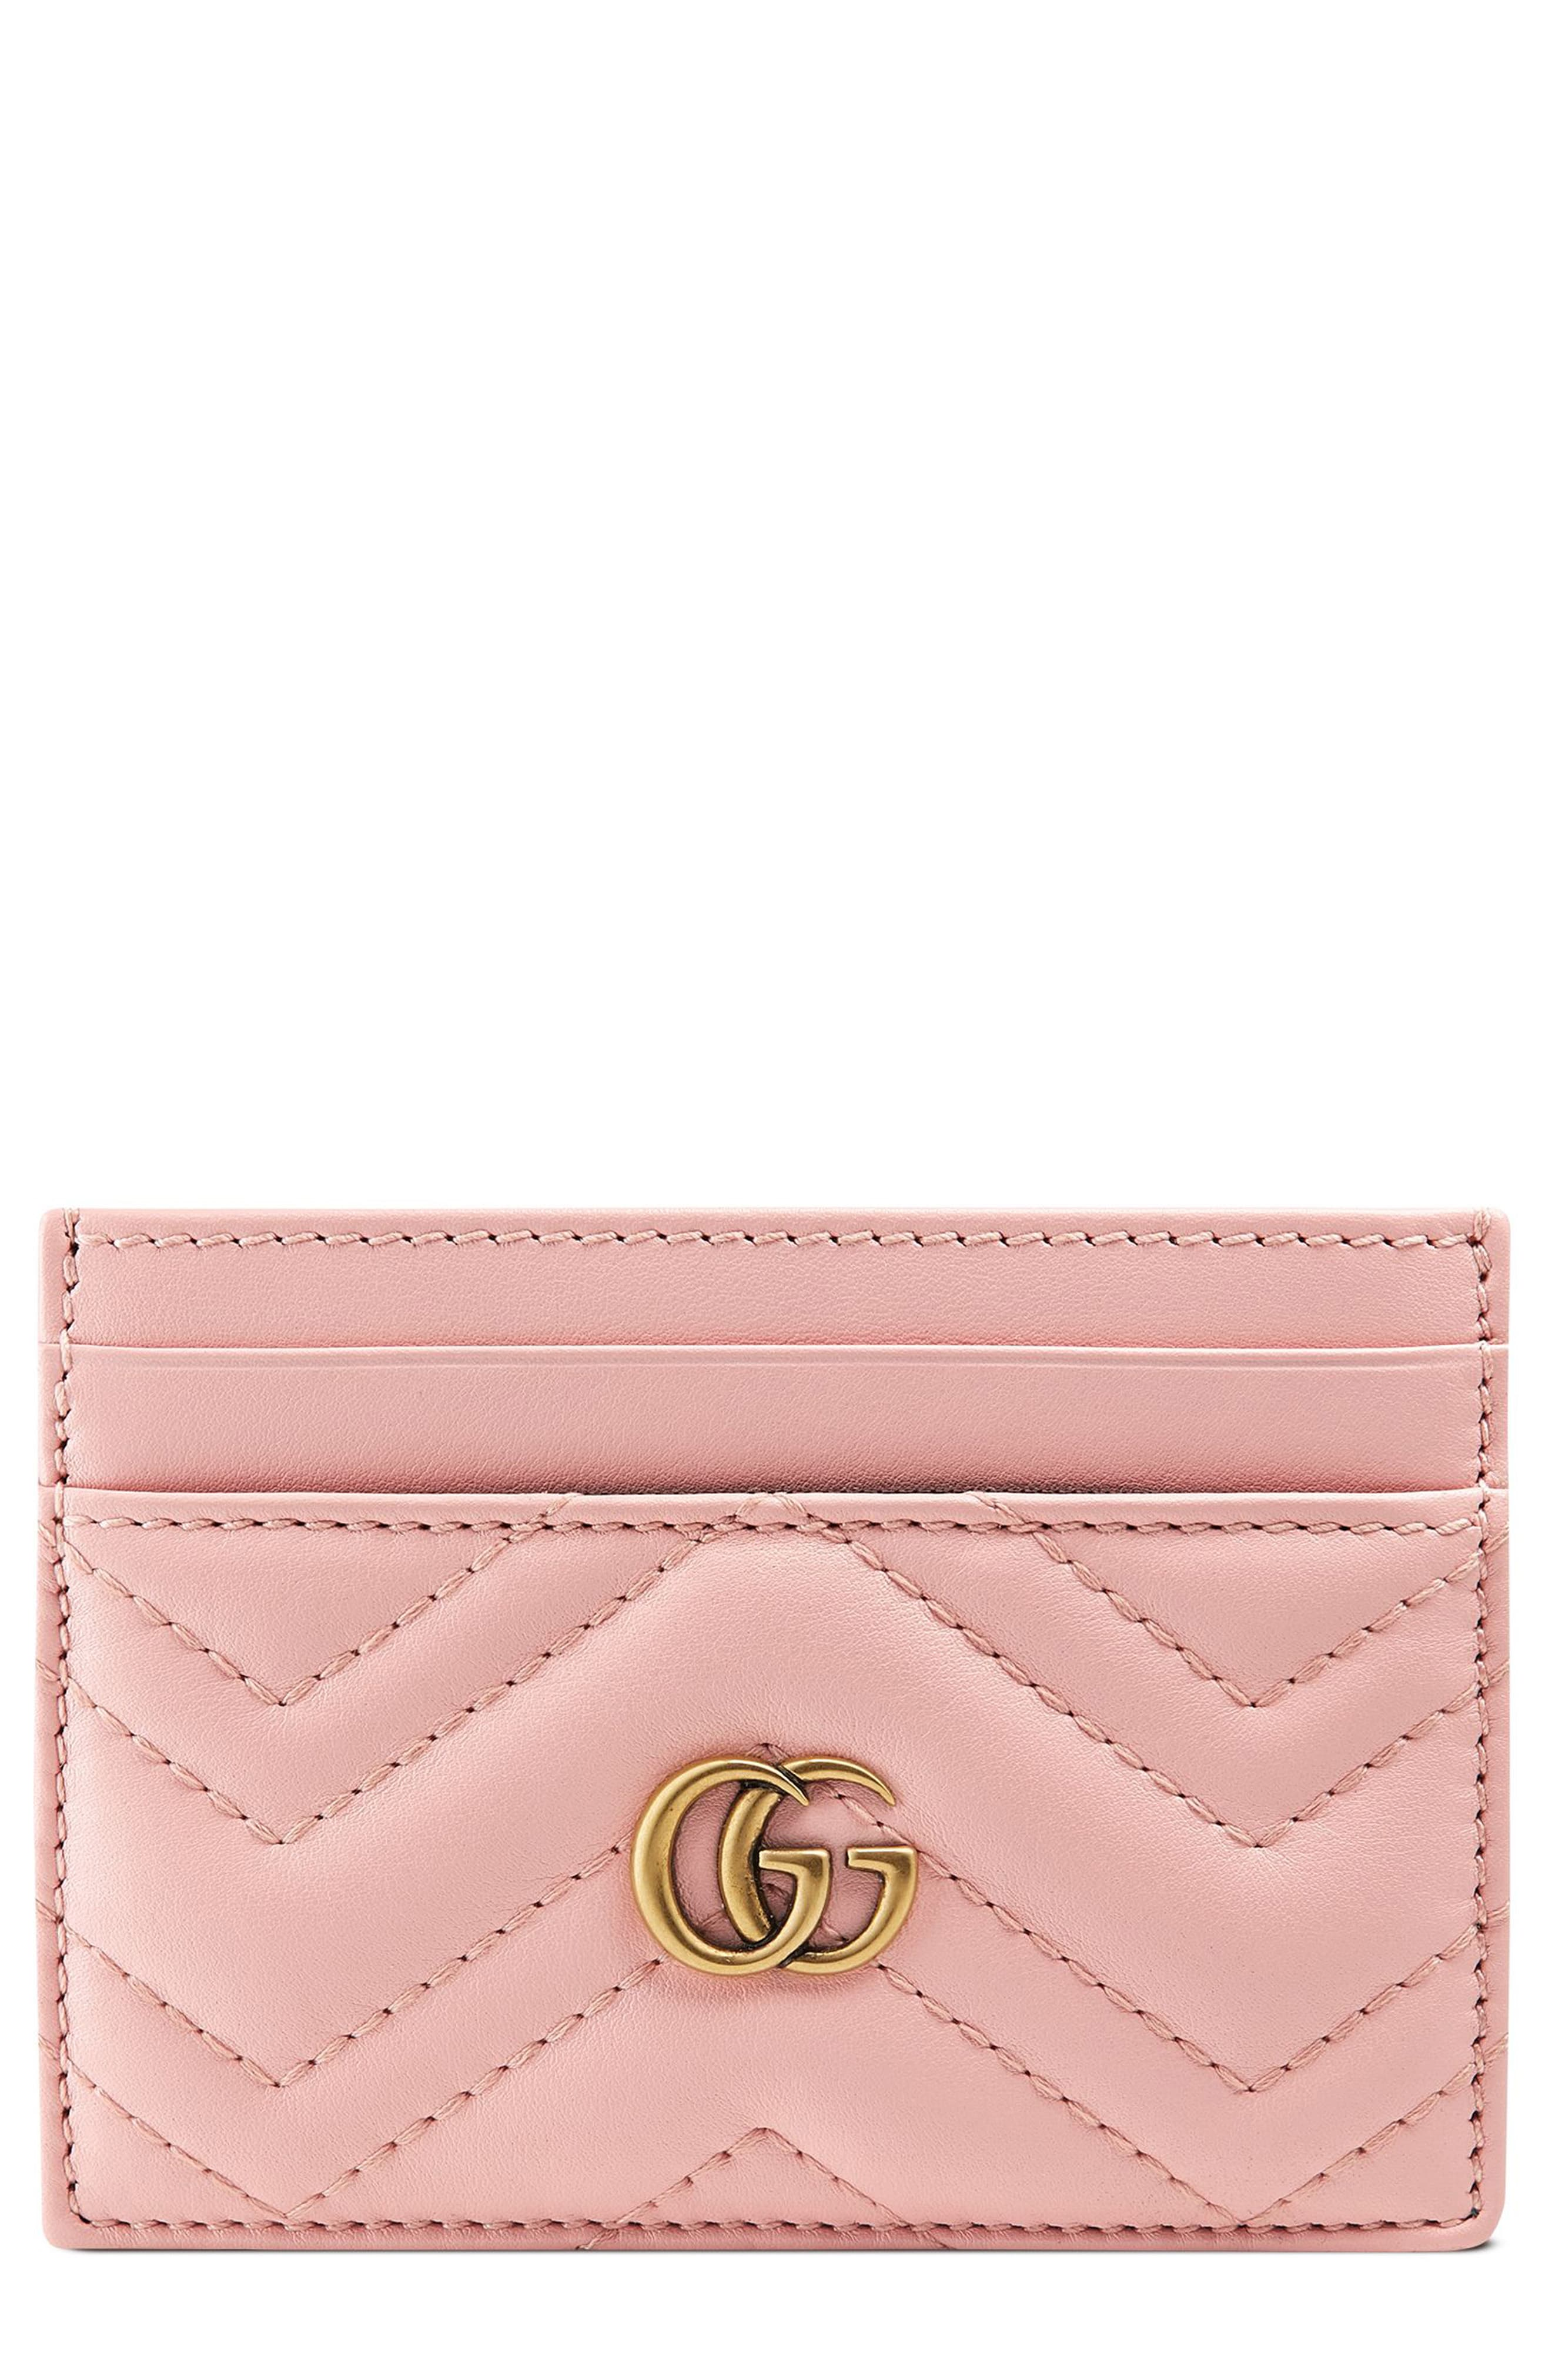 new arrival 0aa72 ad5a3 Gucci GG Marmont Matelasse Leather Card Case in 2019   Products ...